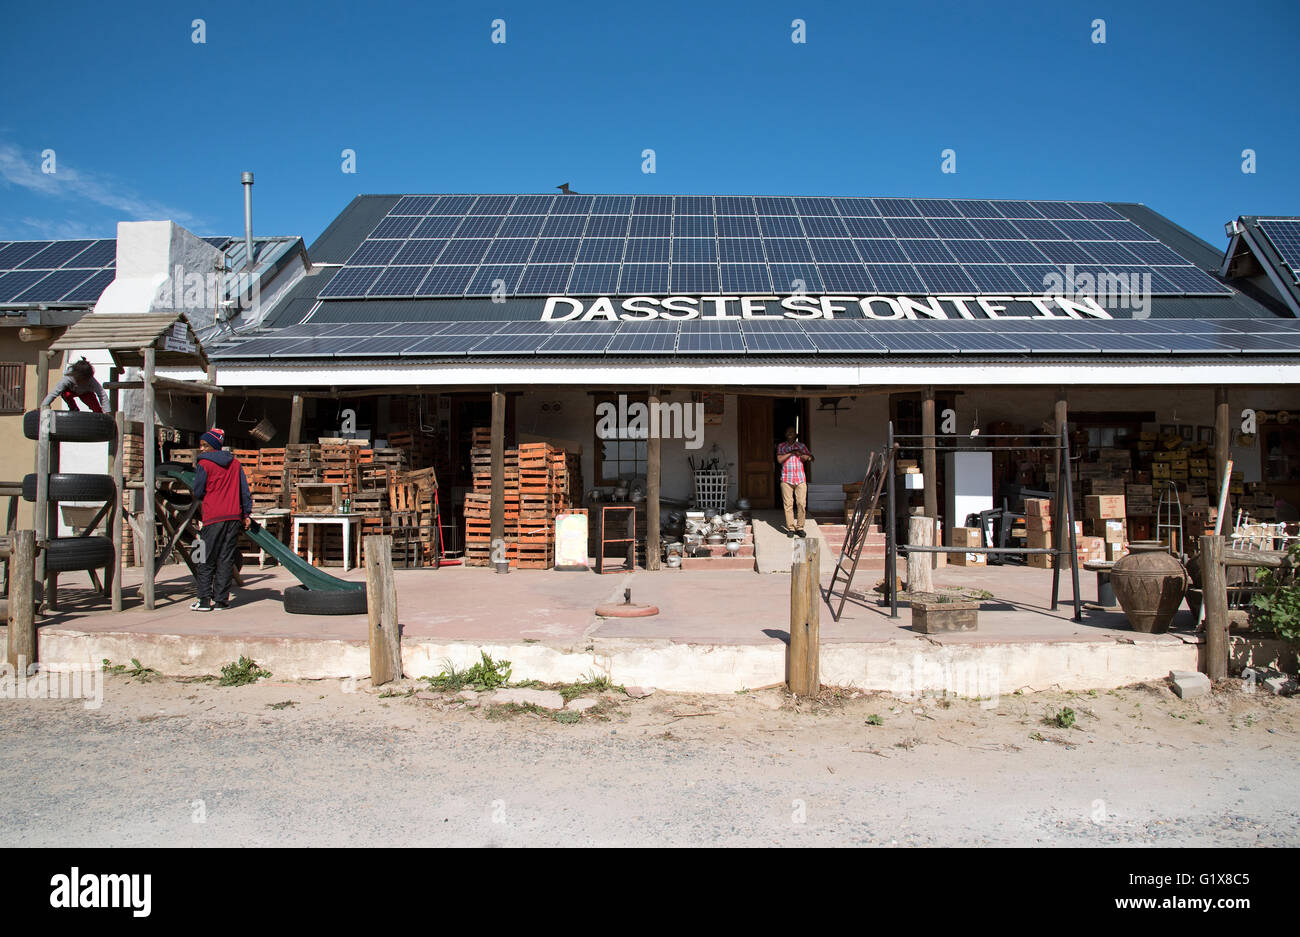 DASSIESFONTEIN CALEDON WESTERN CAPE SOUTH AFRICA  - The Dassiesfontein farm stall with solar panels on the roof - Stock Image